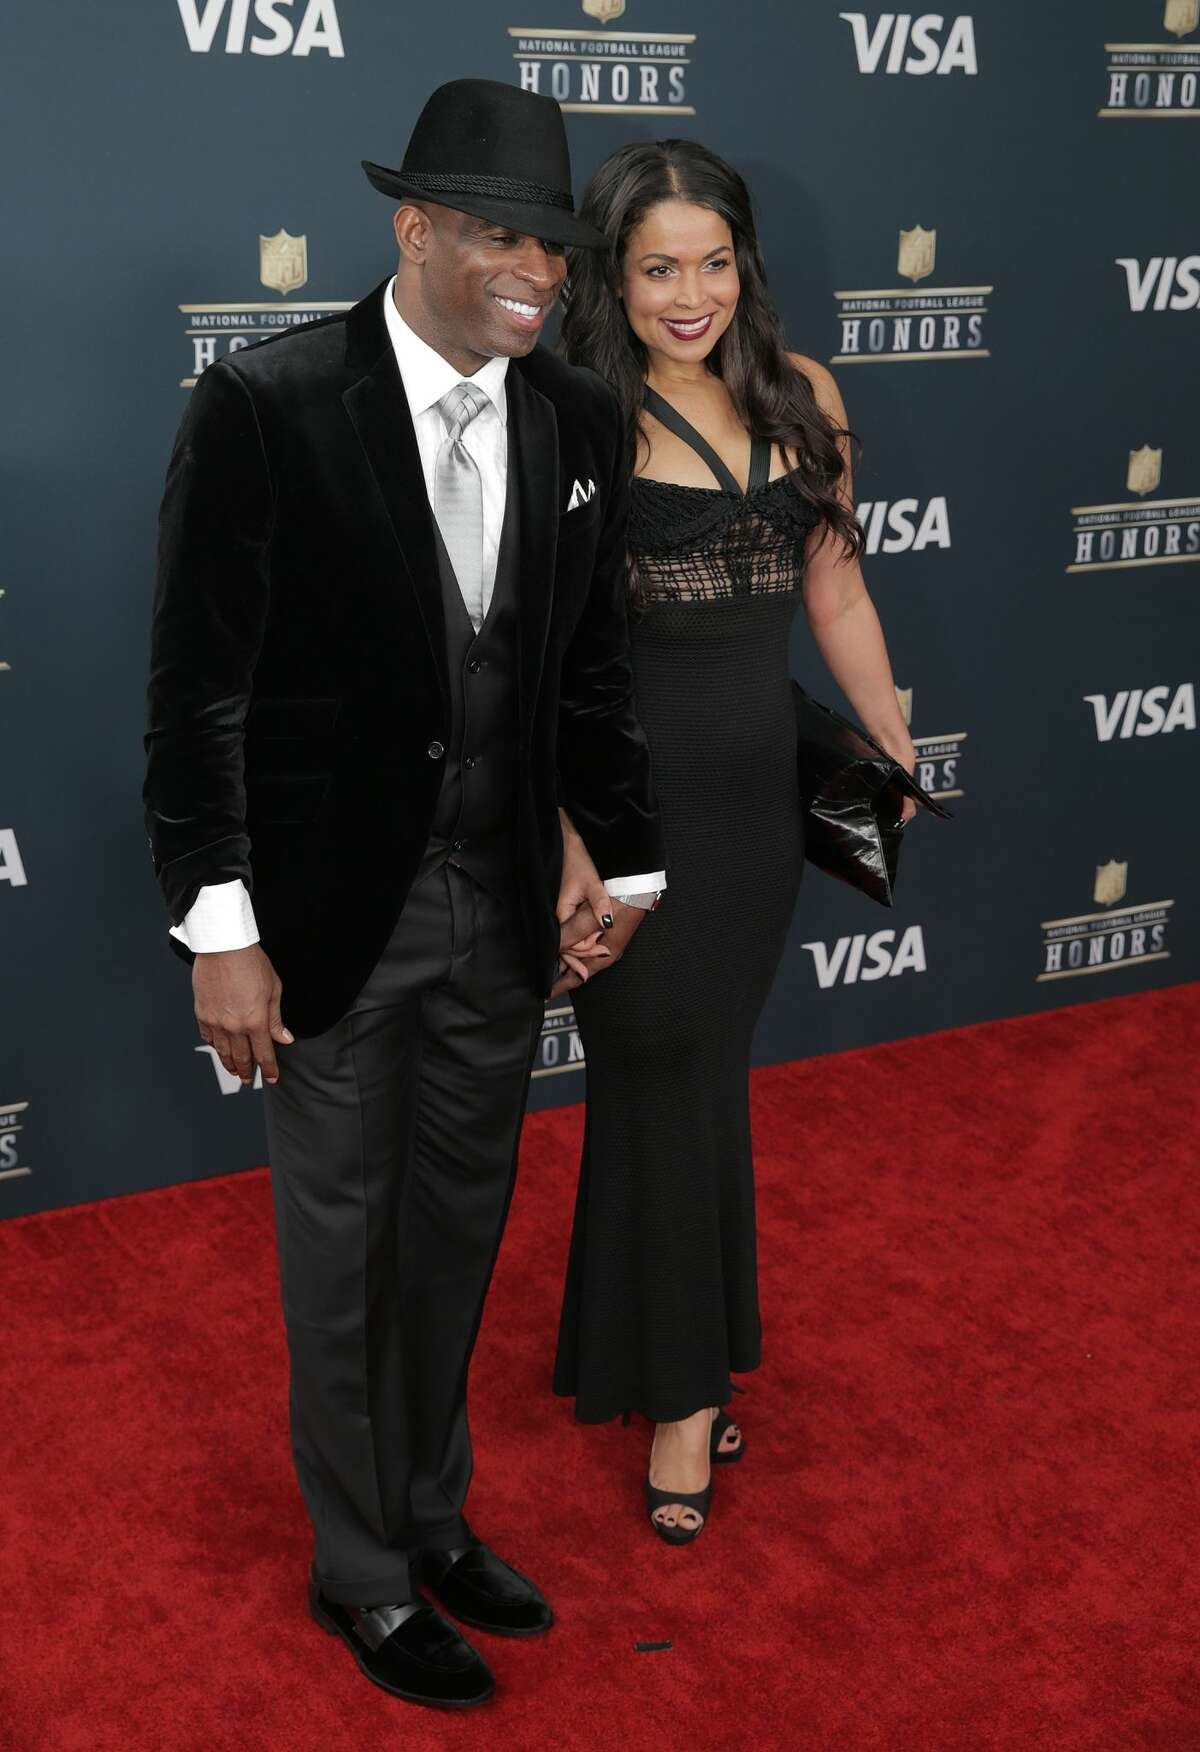 NFL legend Deion Sanders poses on the red carpet of the NFL honors night at the Wortham Theater Center on Saturday, Feb. 4, 2017, in Houston. ( Elizabeth Conley / Houston Chronicle )